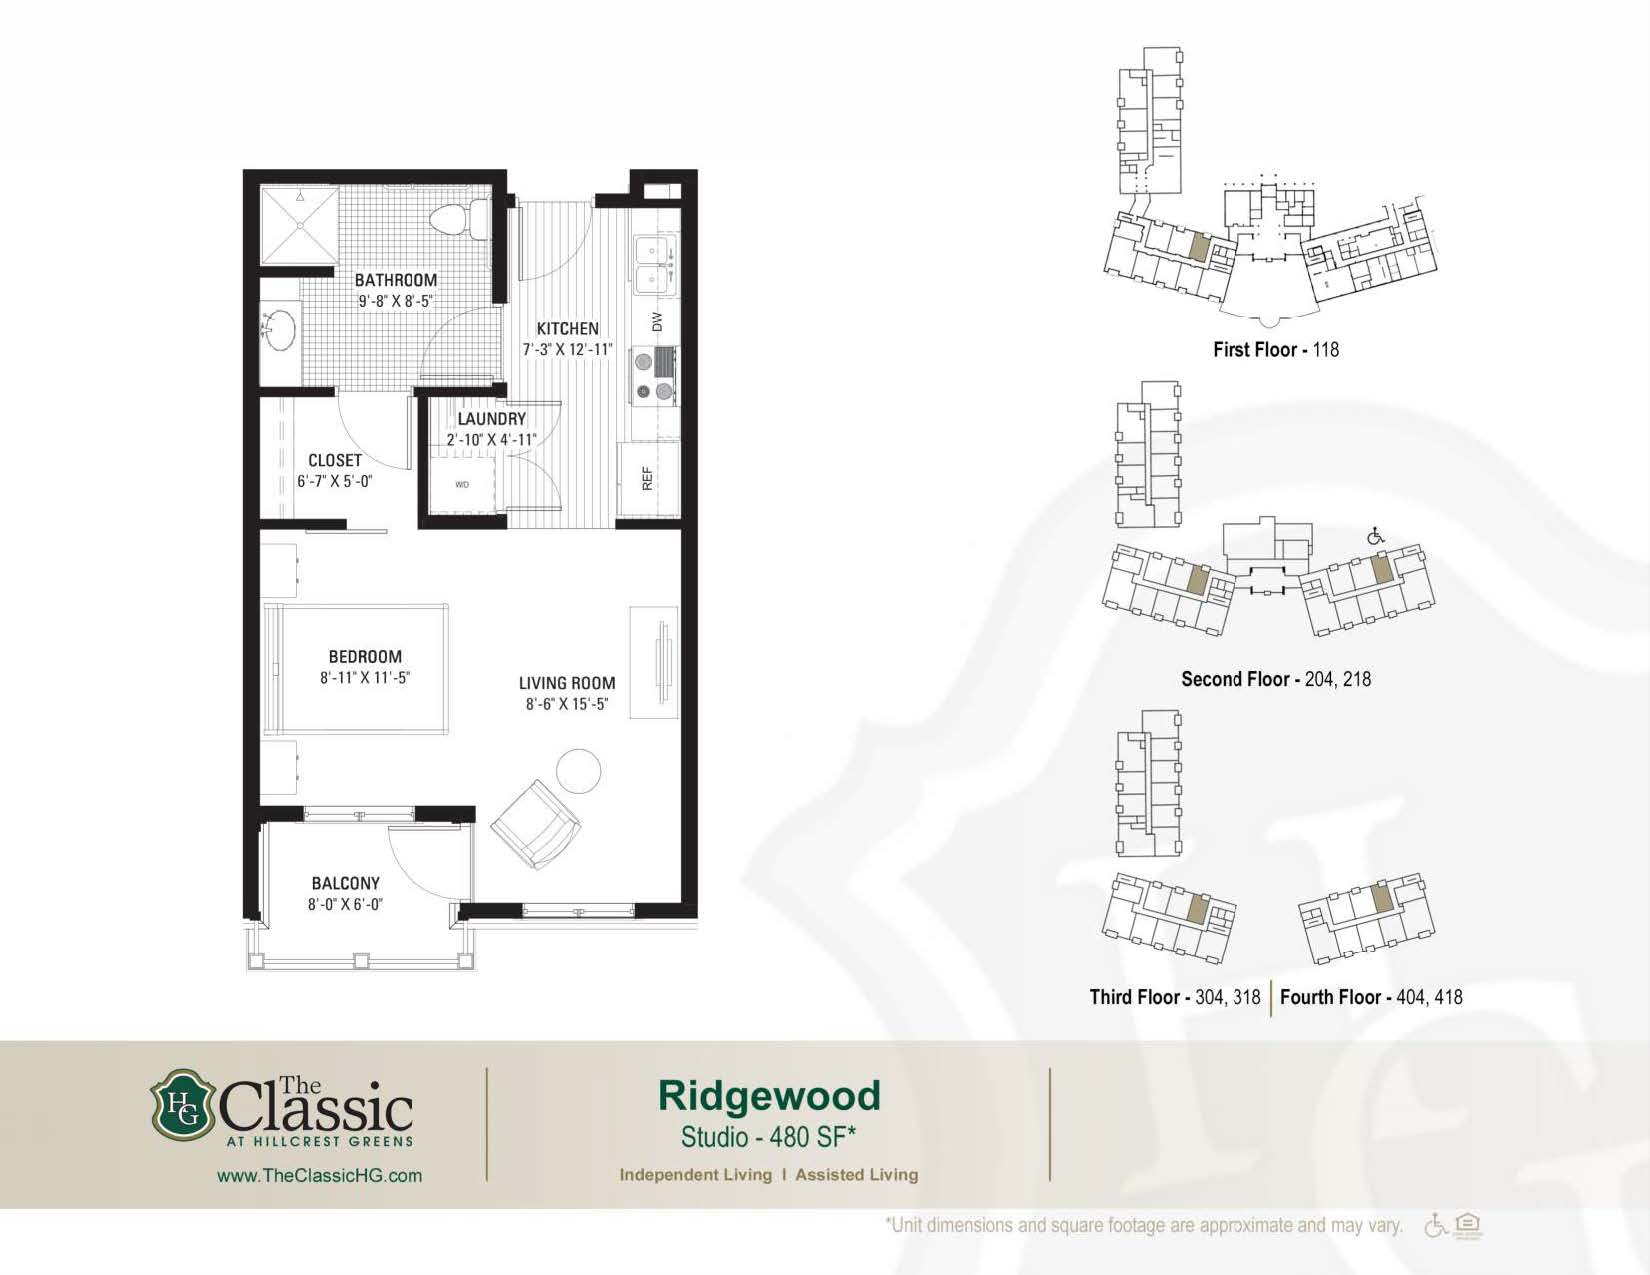 The Ridgewood floor plan.